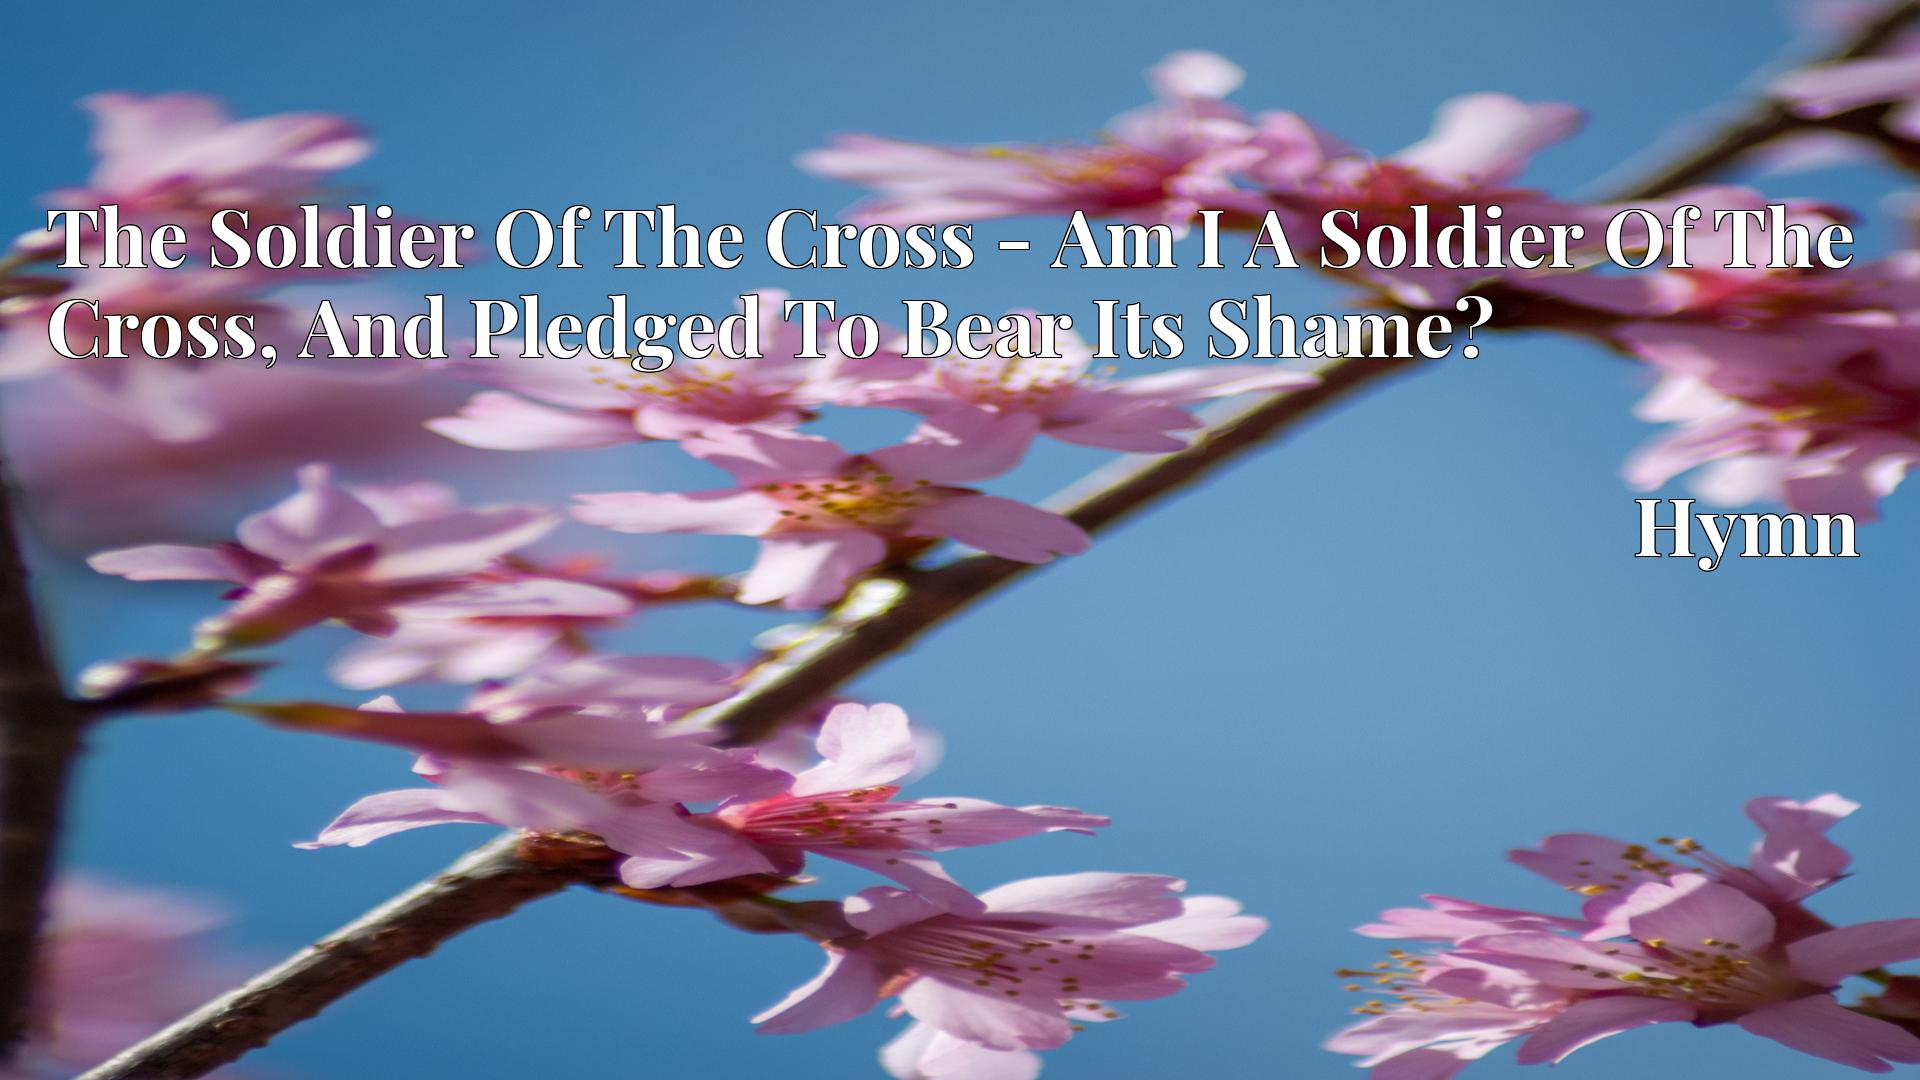 The Soldier Of The Cross - Am I A Soldier Of The Cross, And Pledged To Bear Its Shame? - Hymn